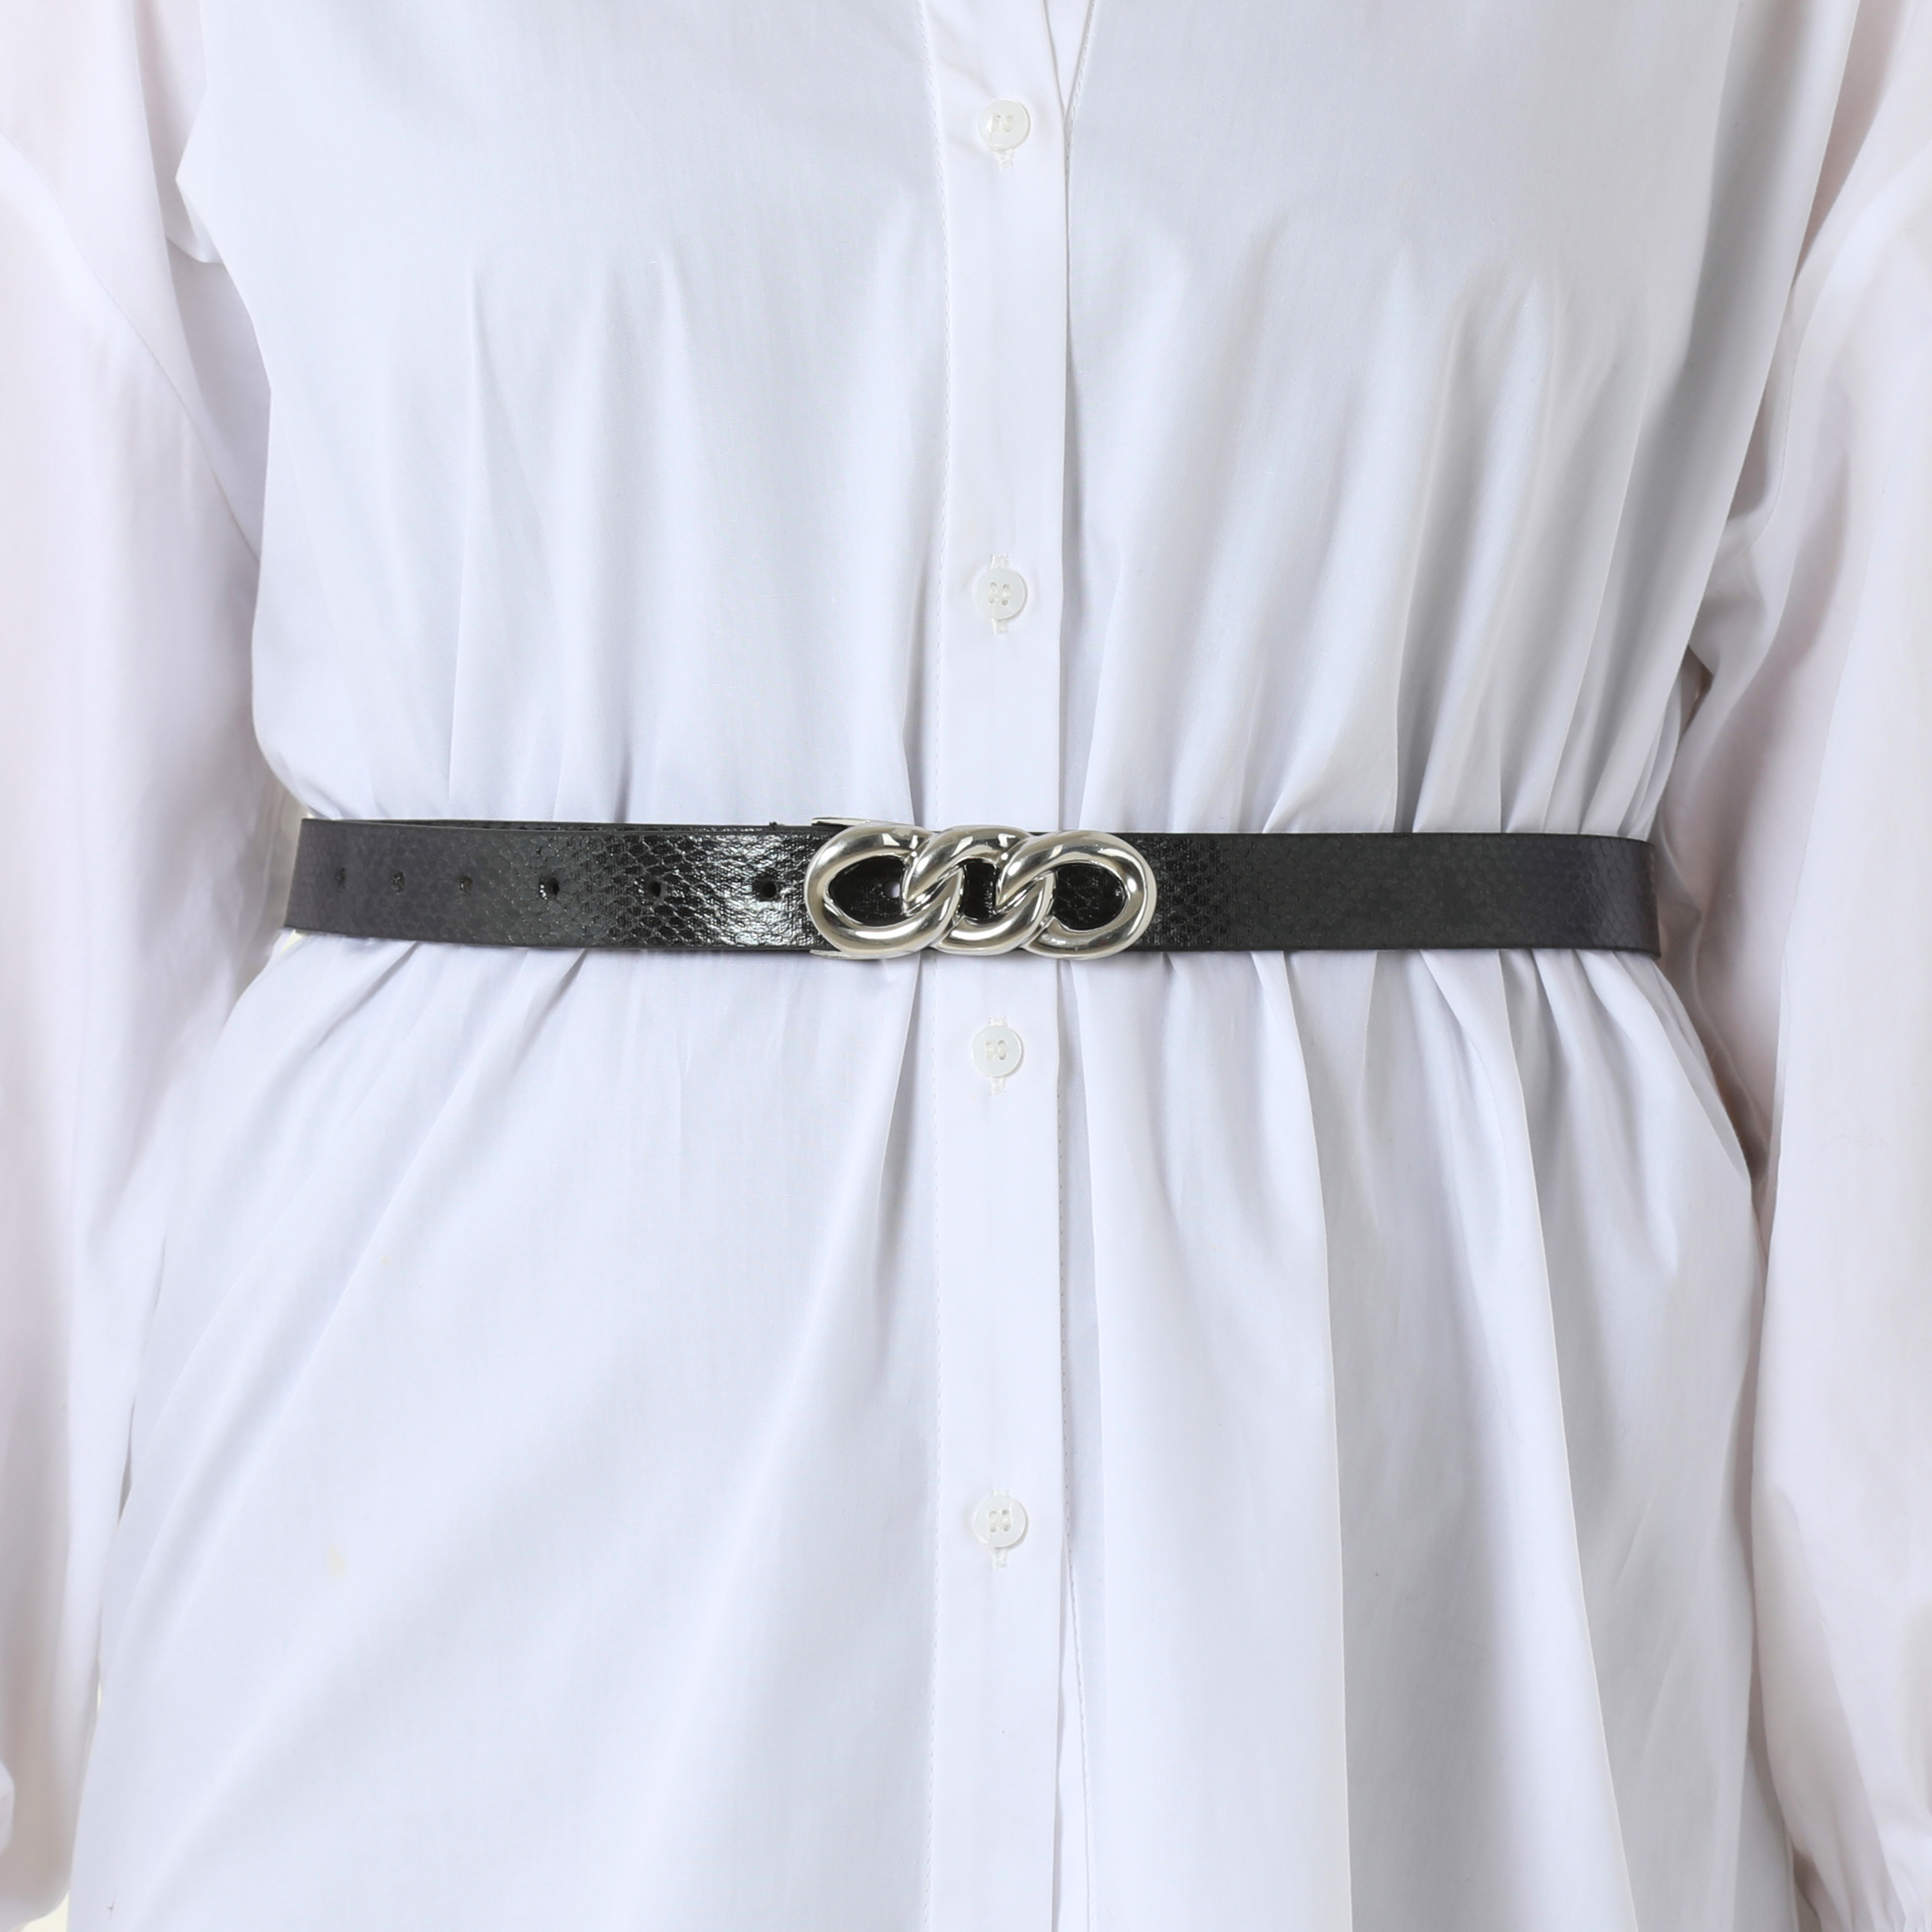 Silver Chain Detail Belt In Black Snake Print Faux Leather